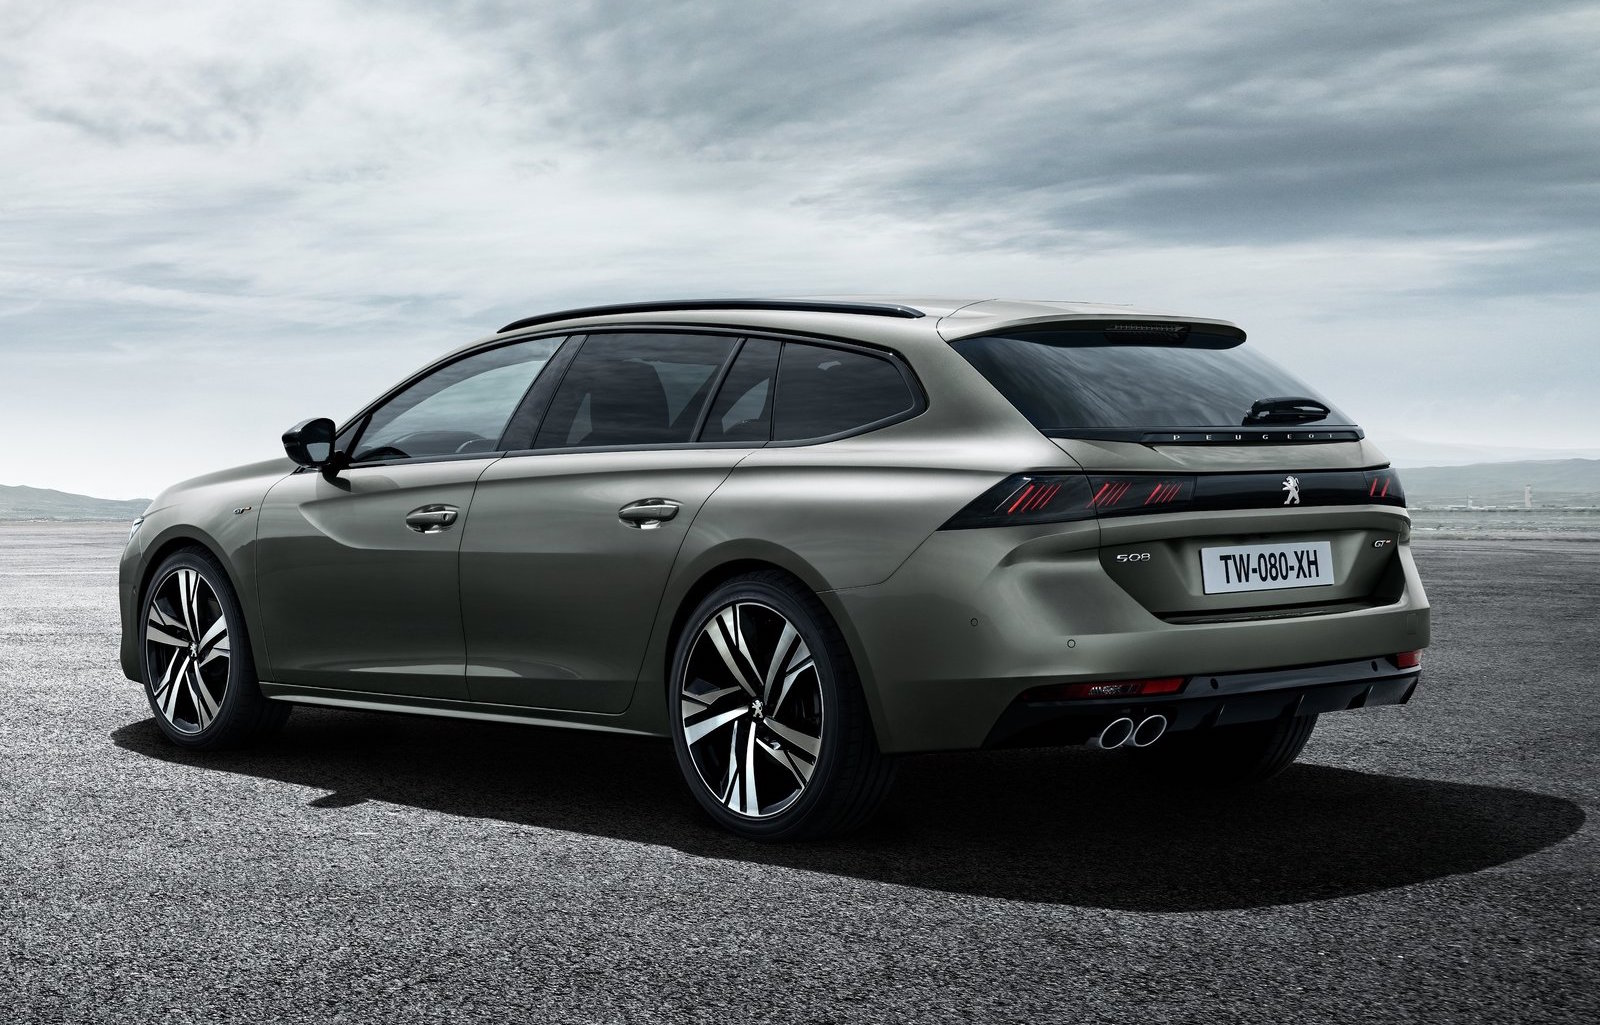 2019 Peugeot 508 Fastback Wagon Confirmed For Australia